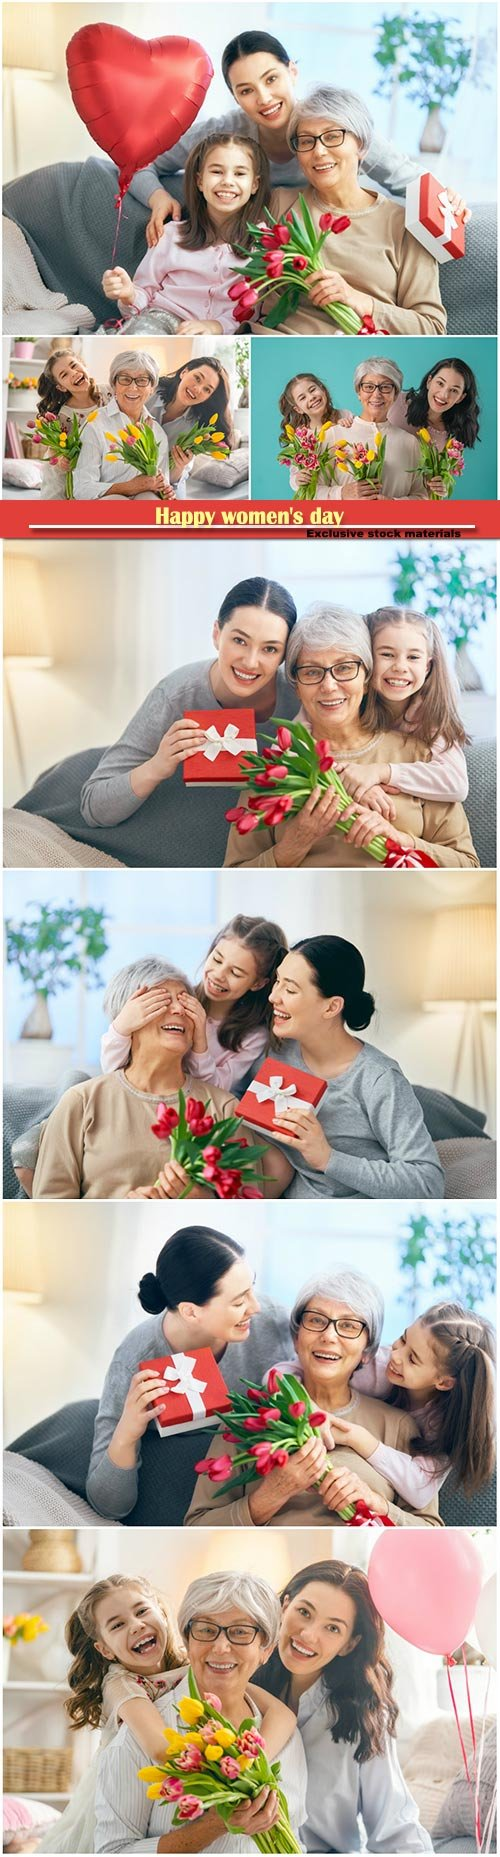 Happy women's day, grandma, mum and girl smiling and hugging